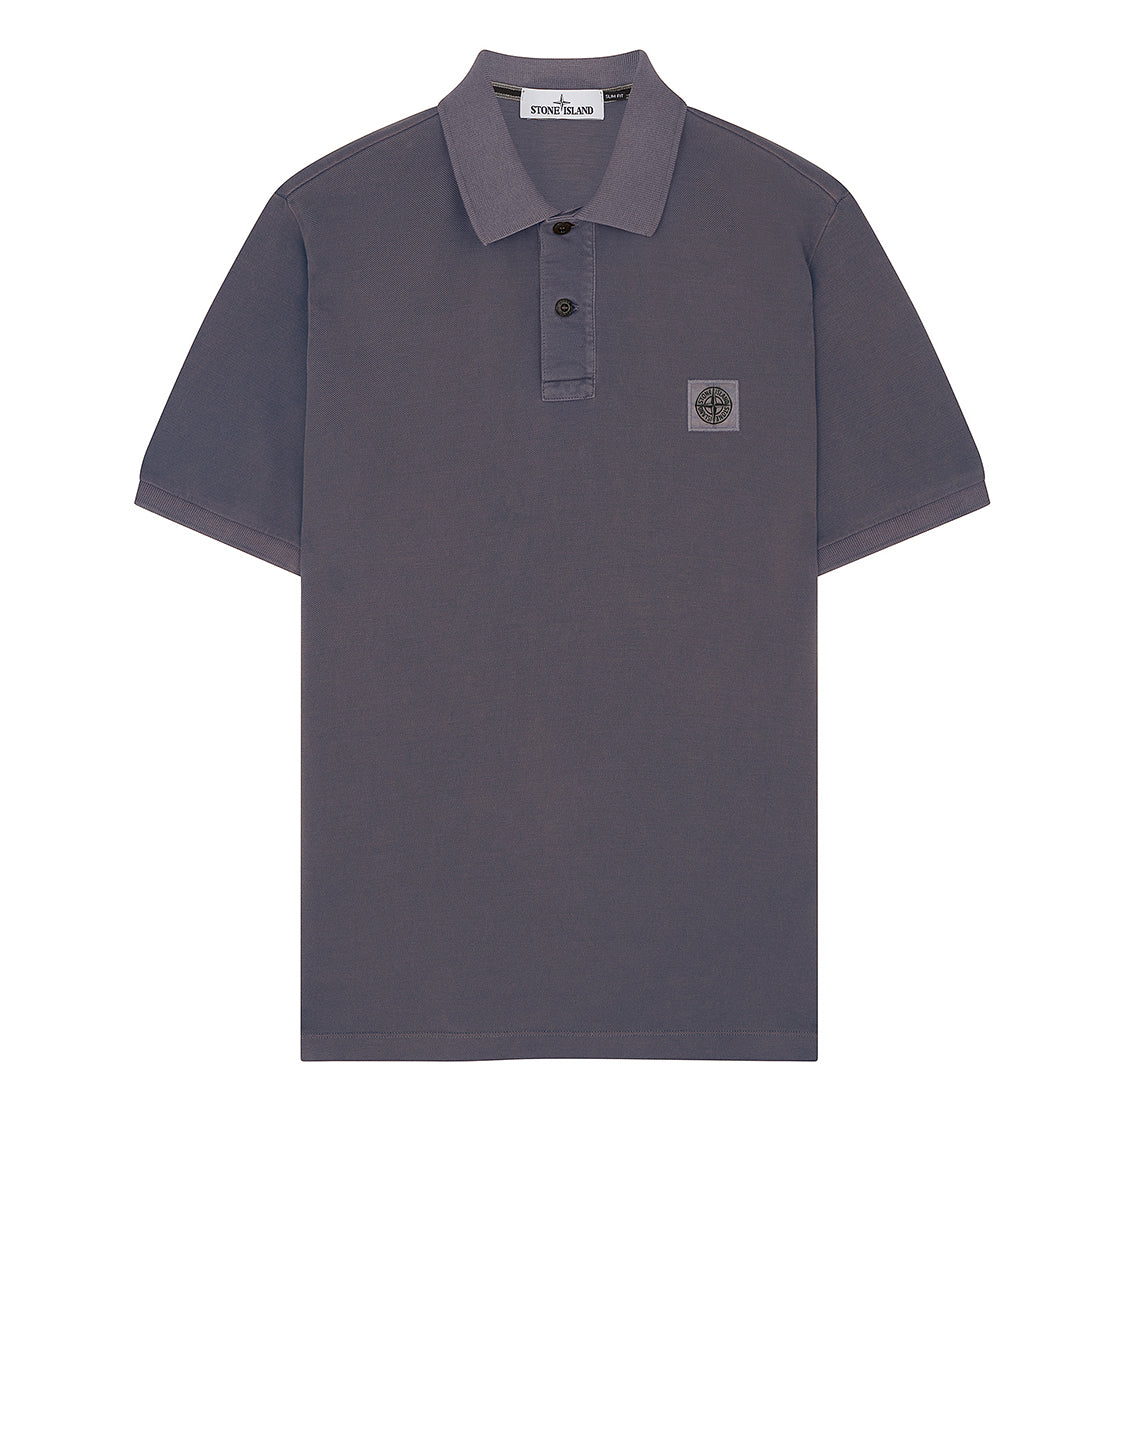 22S67 Pigment Dye Short Sleeve Polo Shirt in Violet